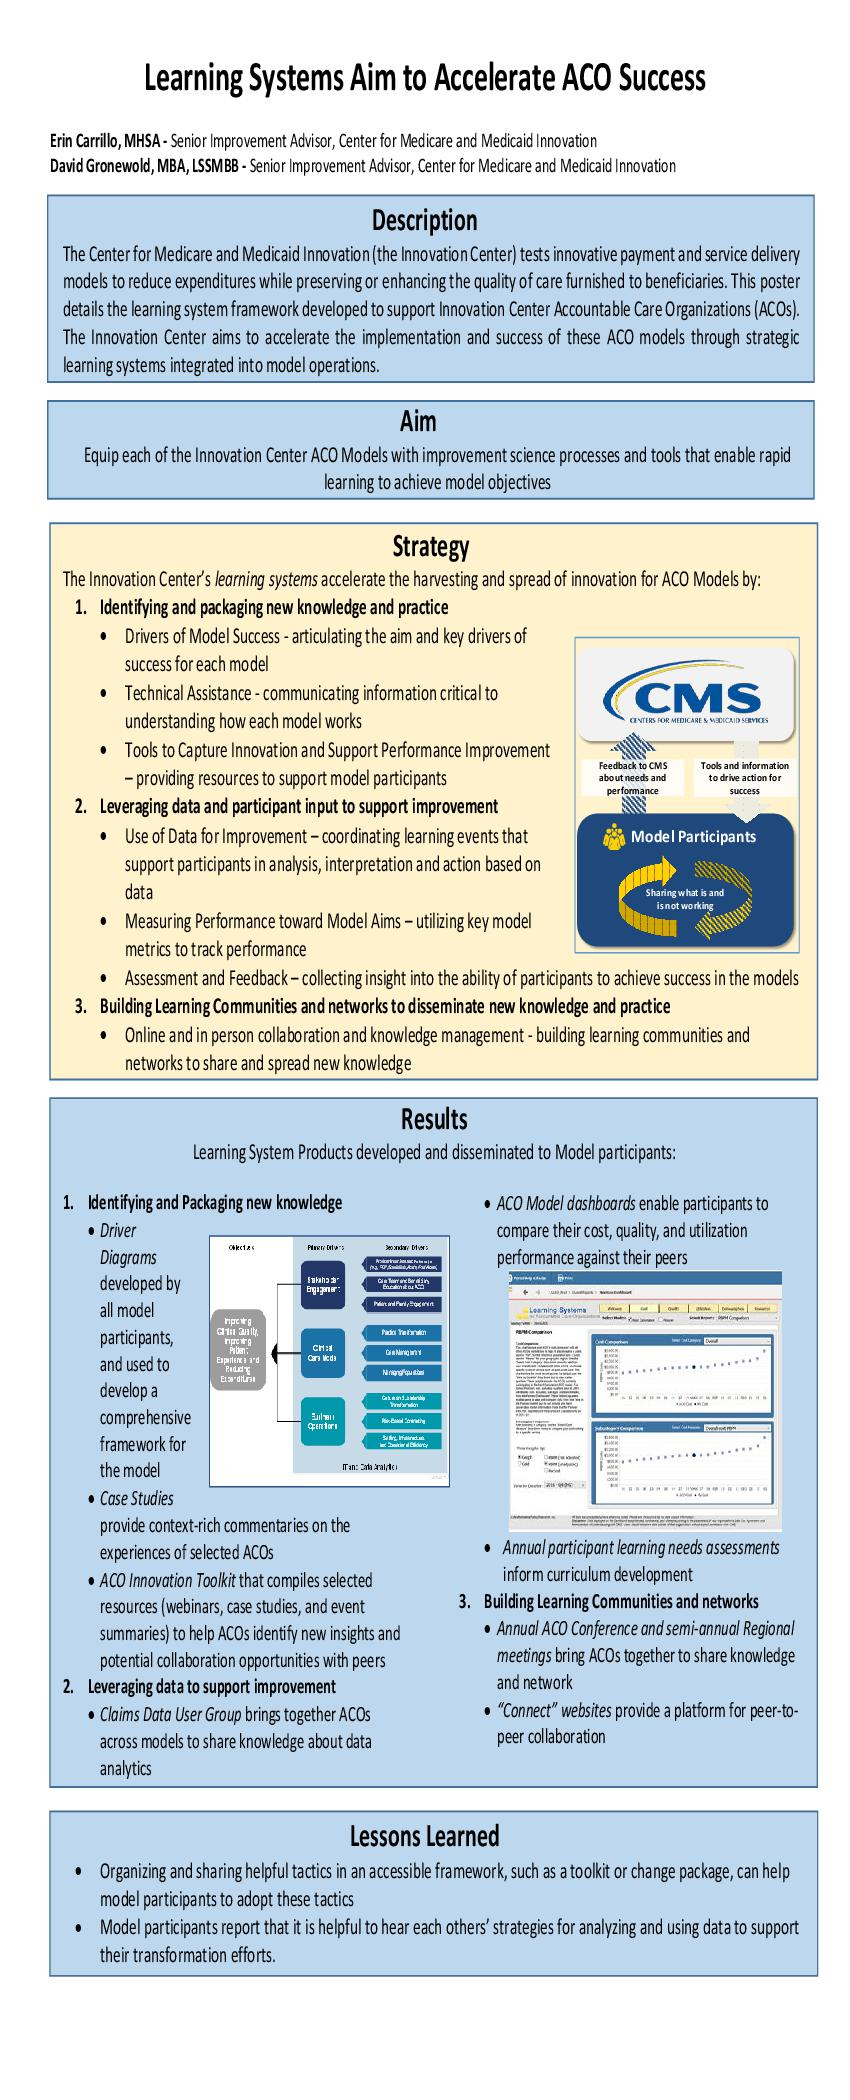 Erin Carrillo IHI Poster Submission